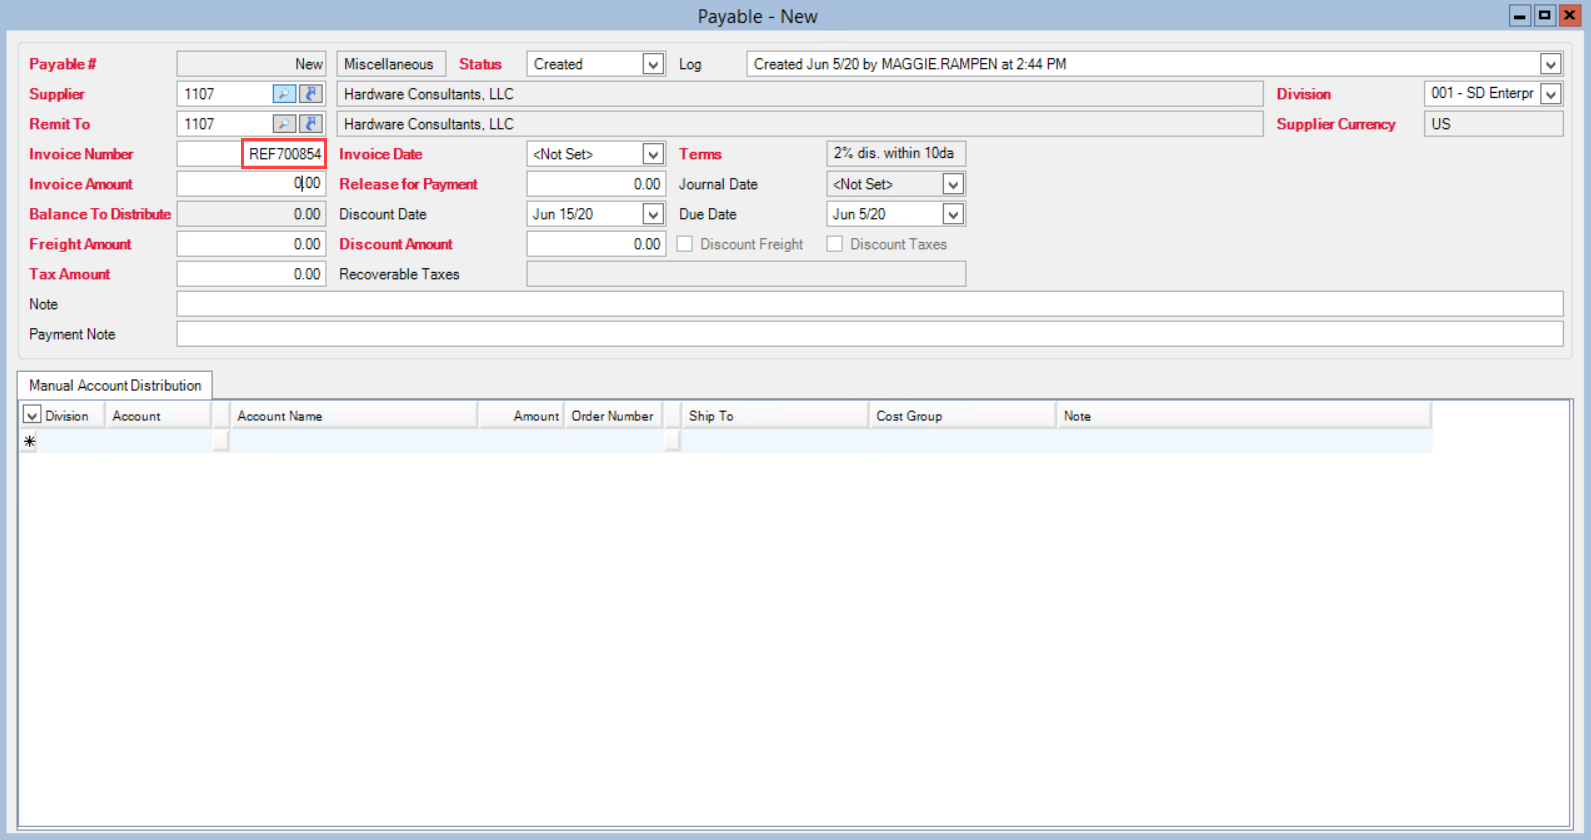 Payable window; shows the location of the Invoice Number field and an example invoice number.